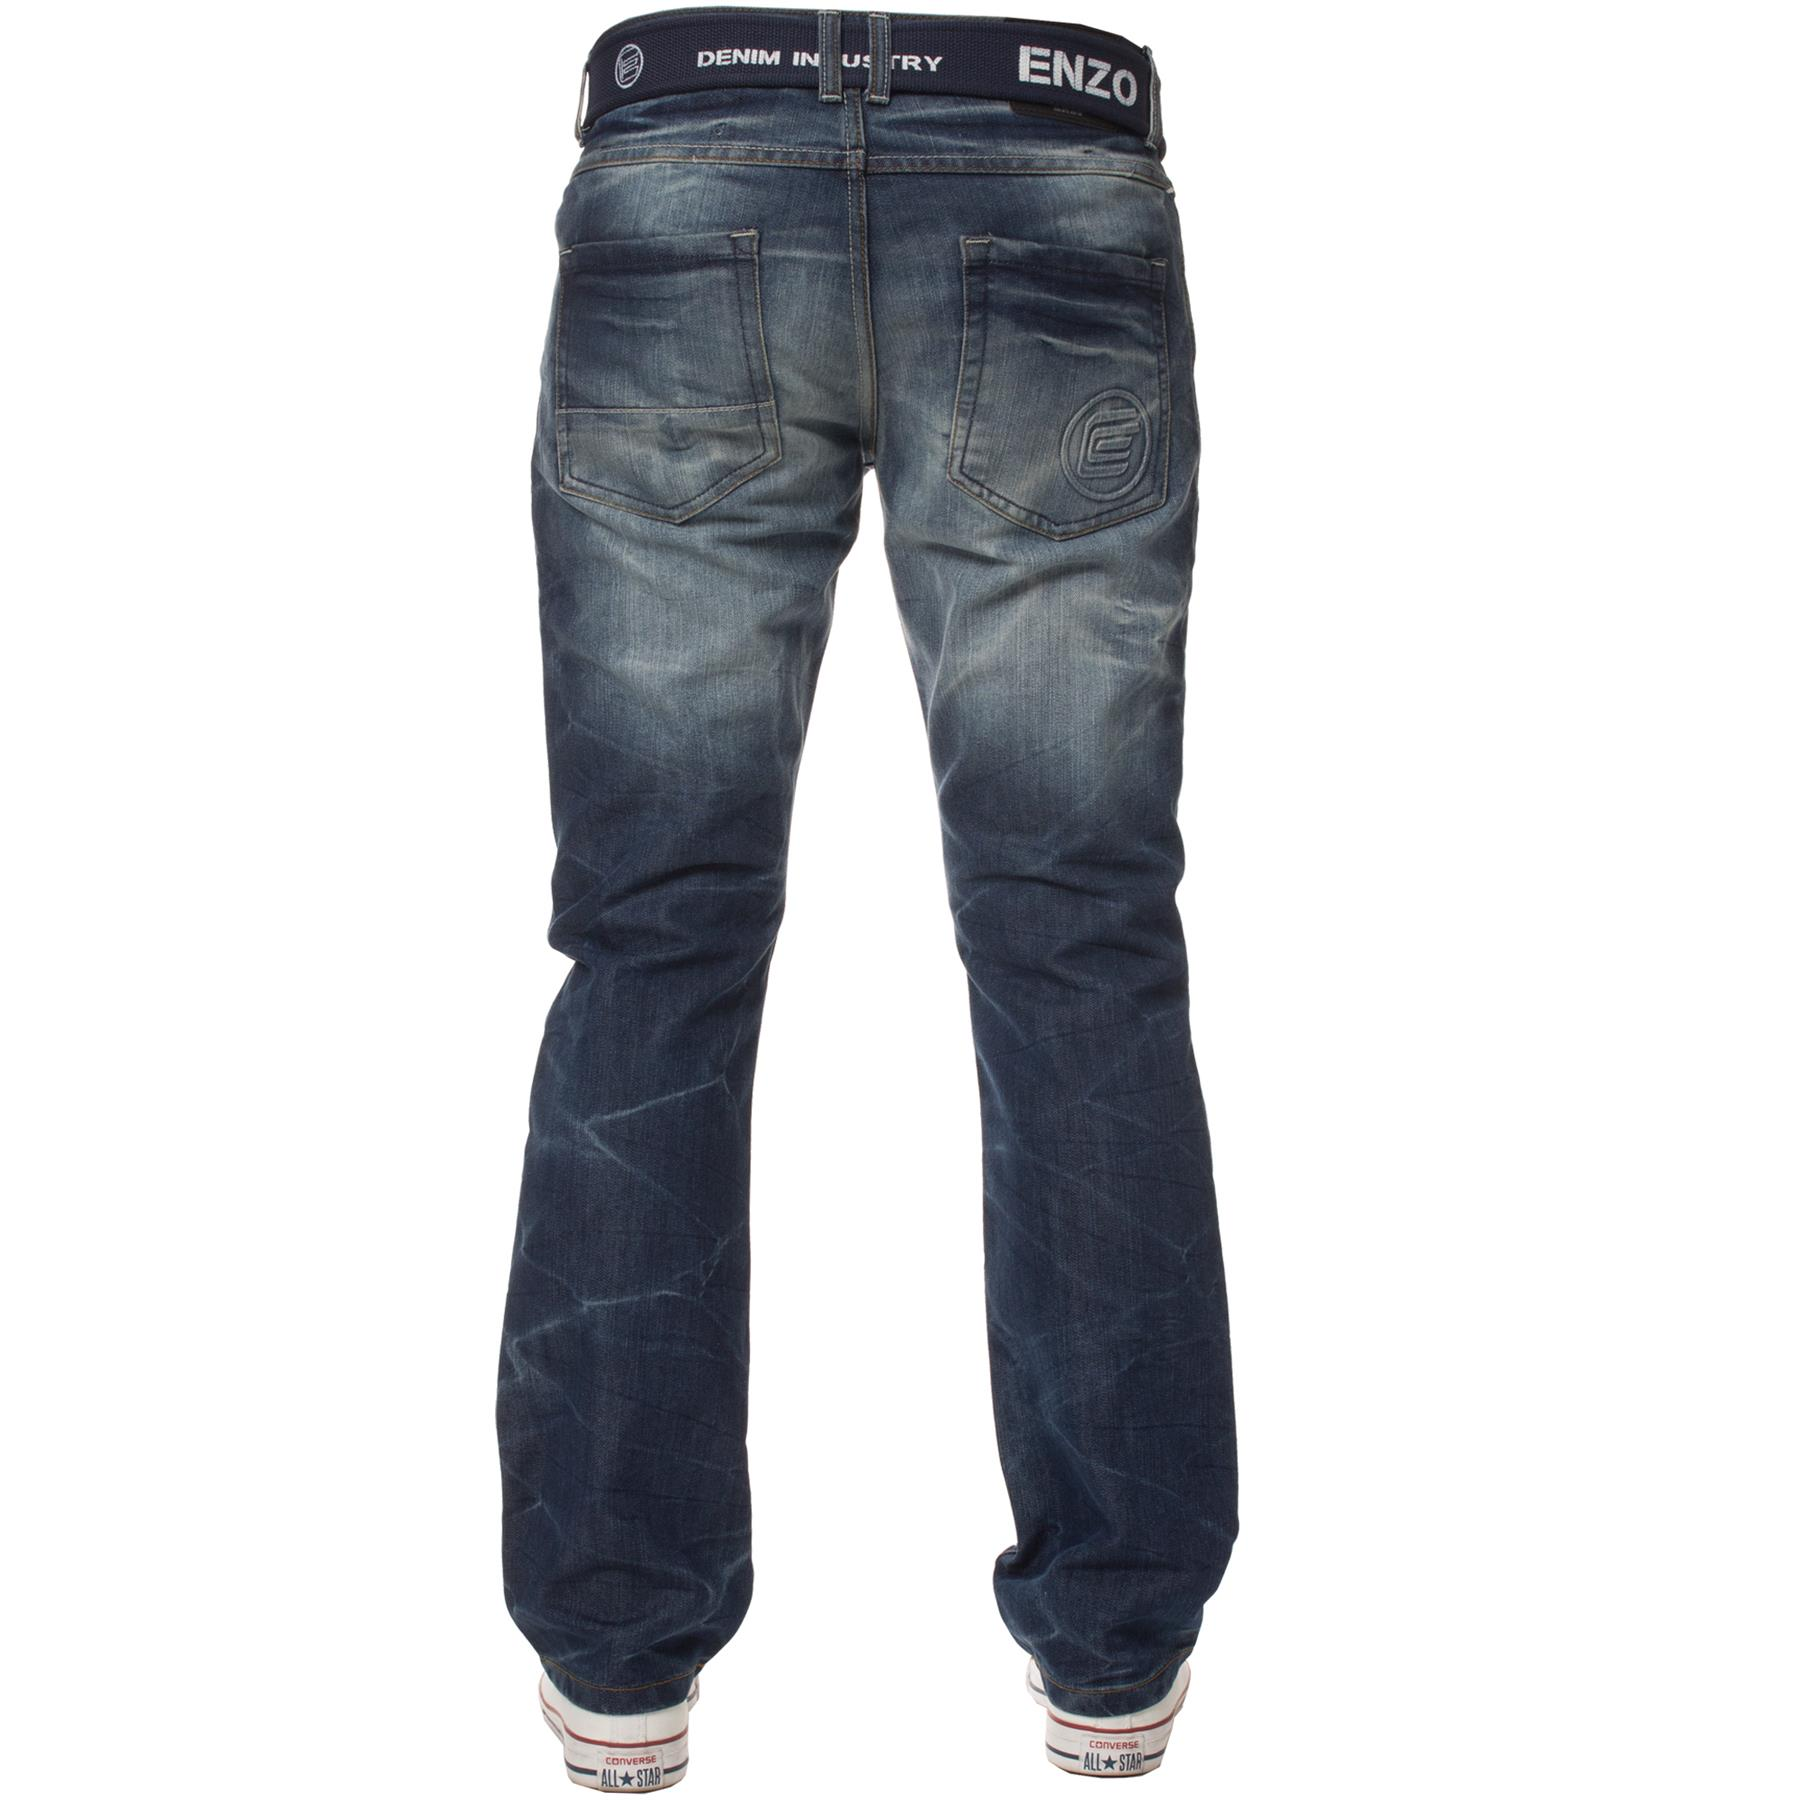 Enzo-Mens-Jeans-Big-Tall-Leg-King-Size-Denim-Pants-Chino-Trousers-Waist-44-034-60-034 miniature 72